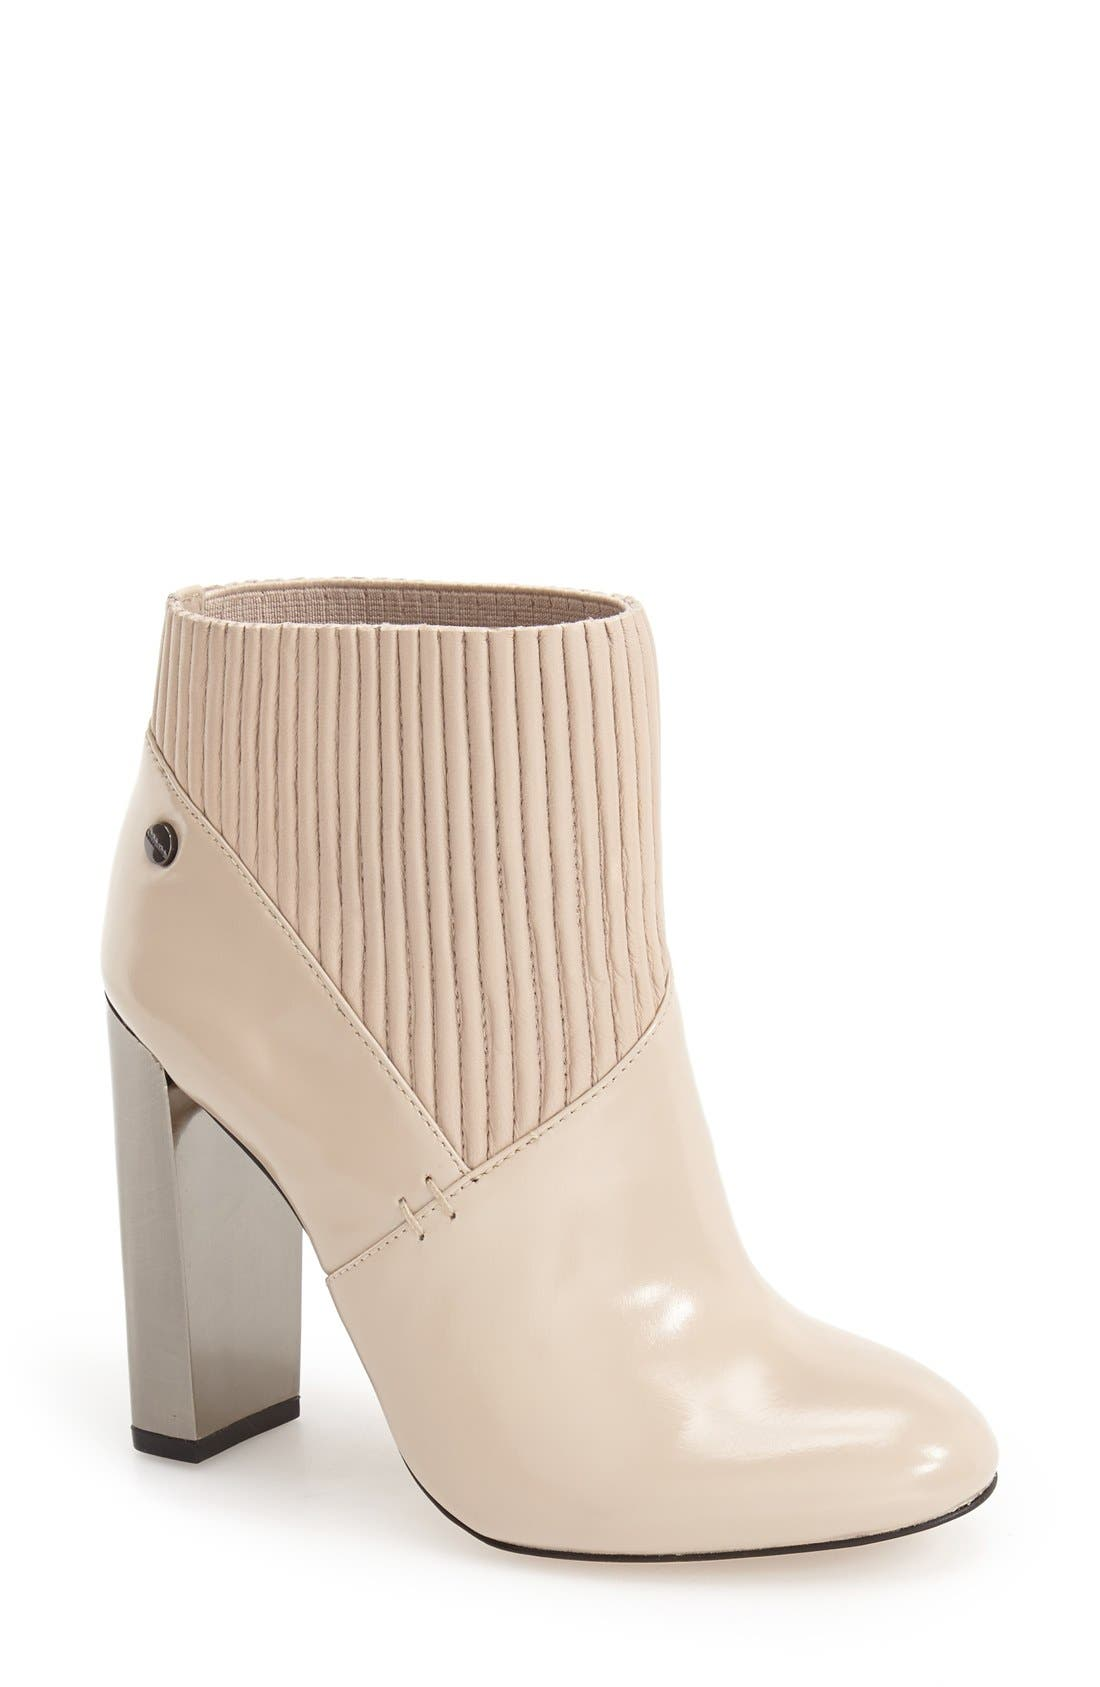 Alternate Image 1 Selected - Calvin Klein 'Klara' Bootie (Women)